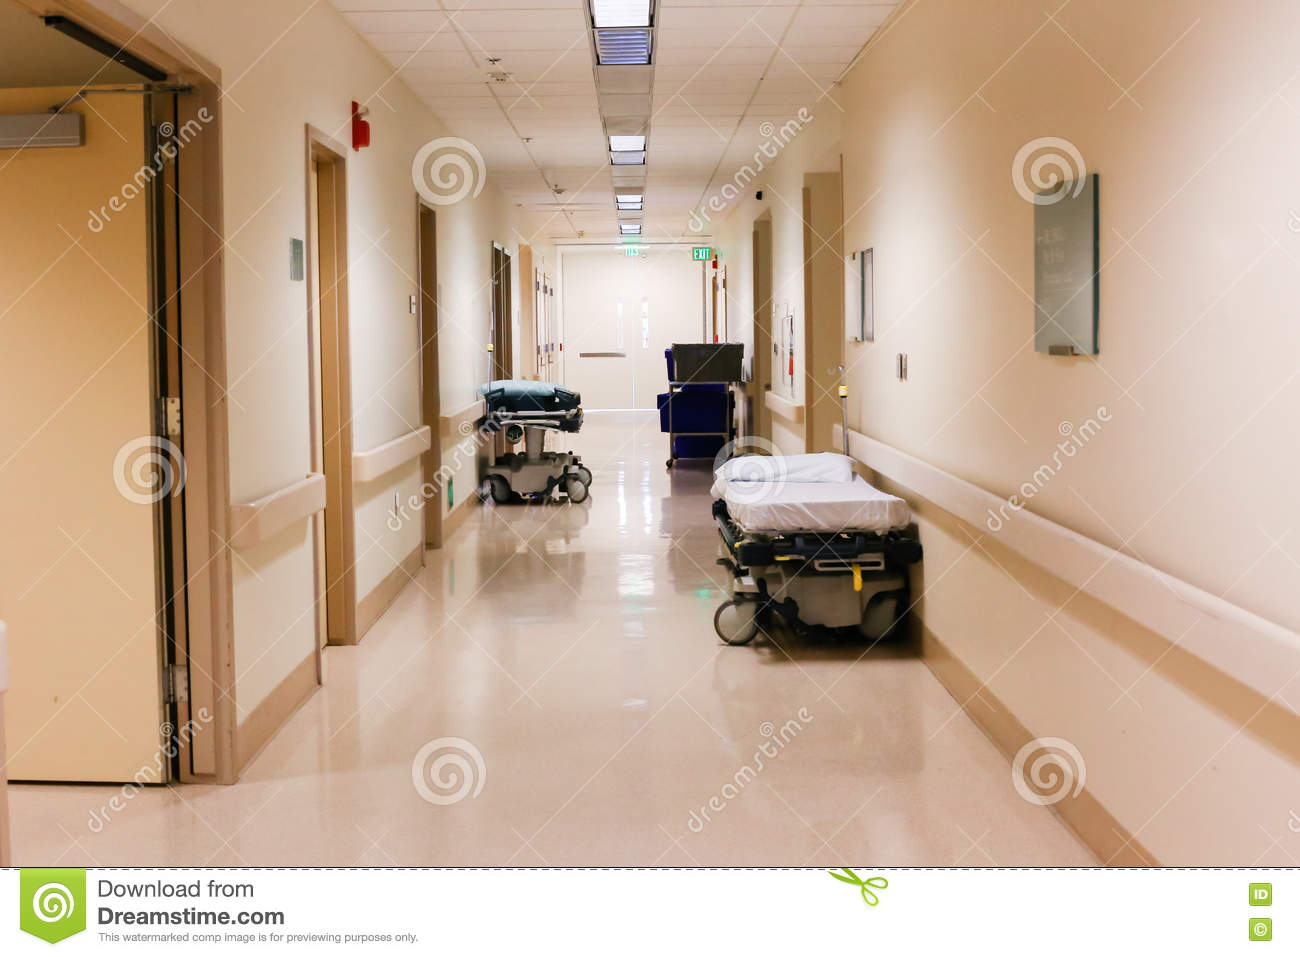 Download Hallway Or Corridor In Hospital Medical Facility Stock Photo